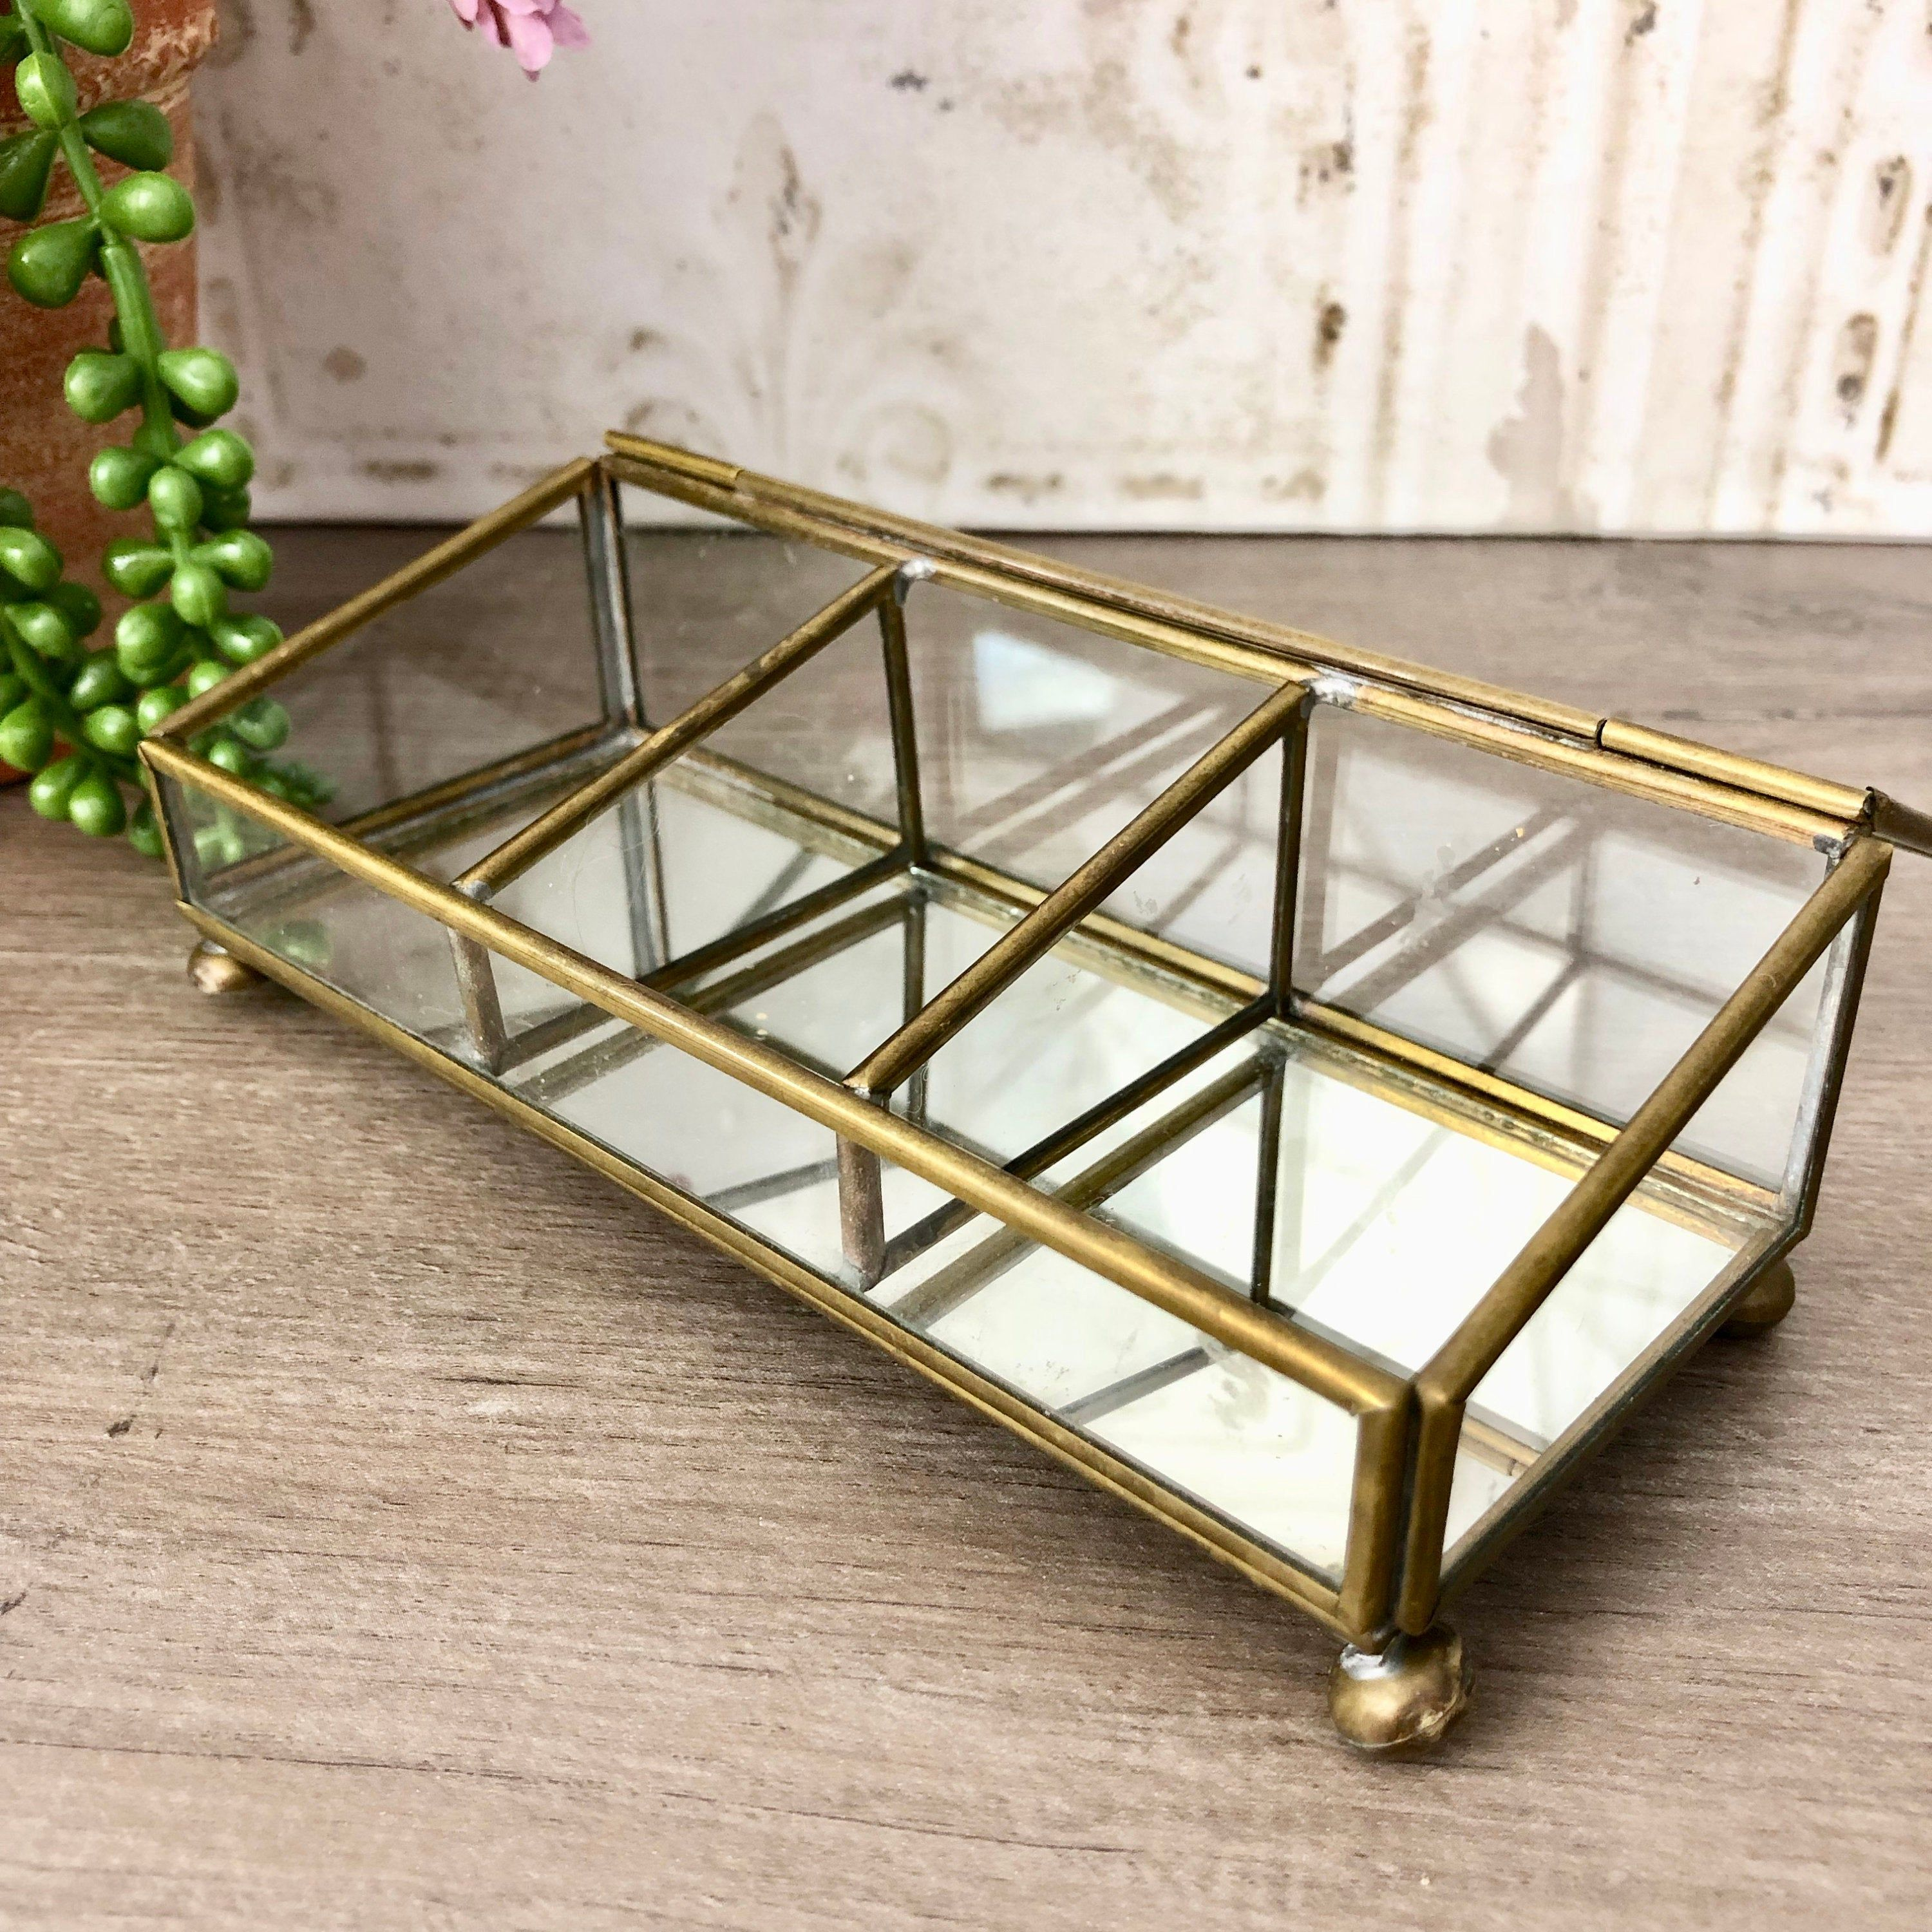 Glass Jewelry Display Etched Glass Display Cabinet Glass Curio Case Table Top Curio Box Hinge With Images Glass Display Case Glass Curio Cabinets Glass Cabinets Display